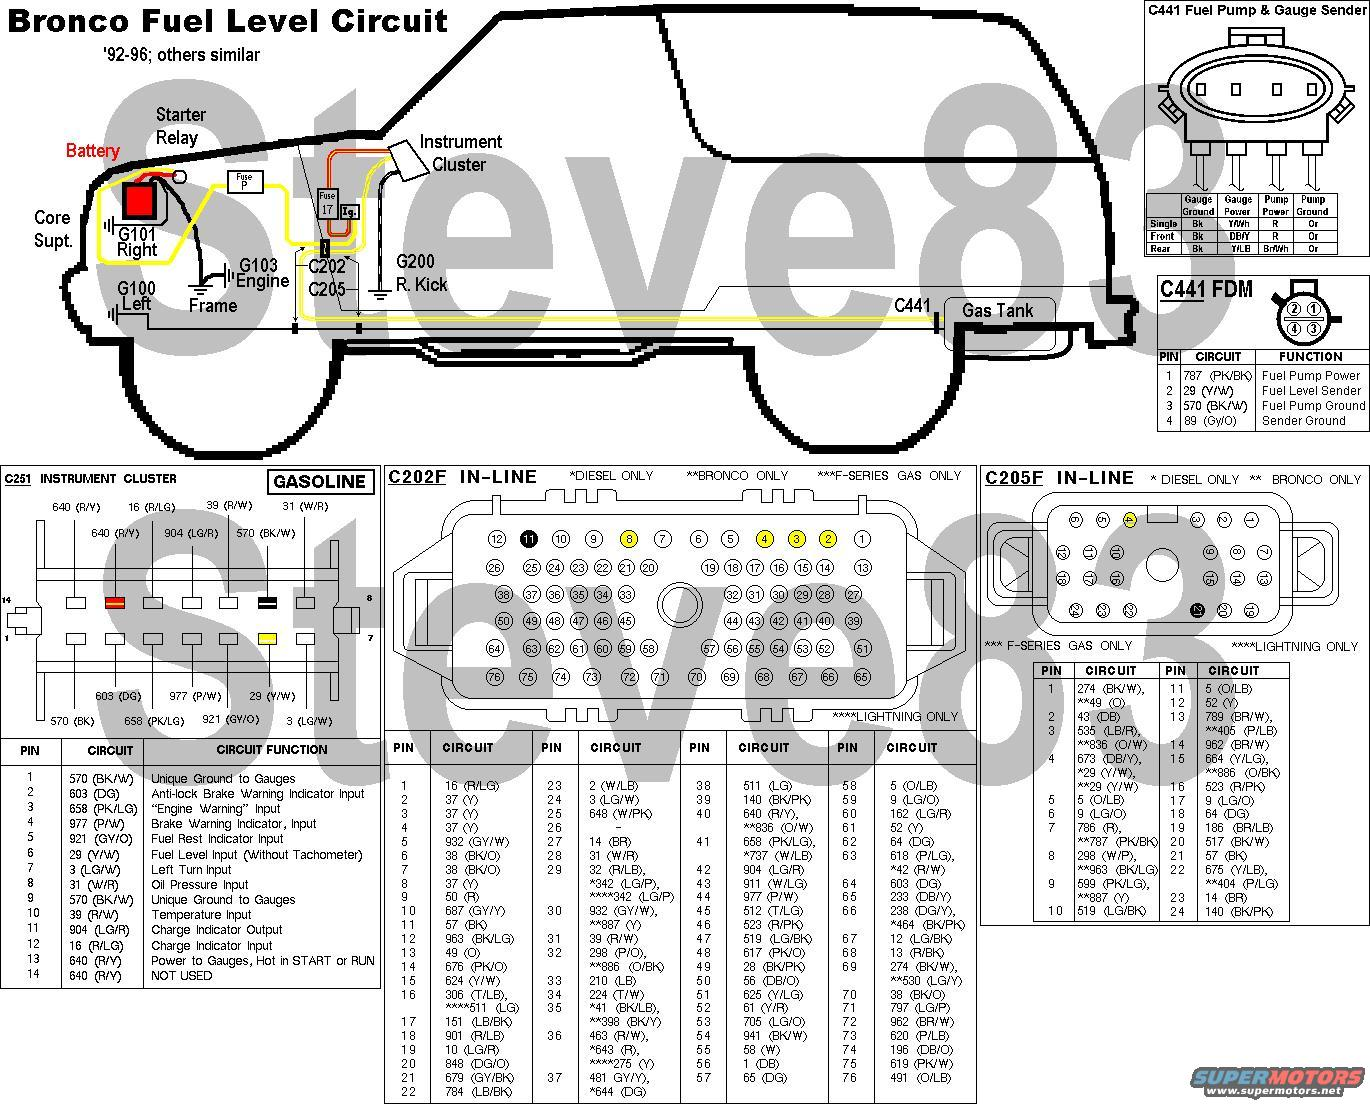 Old Ford Gas Gauge Wiring Diagram Start Building A Fuel Boat Bronco Forum View Single Post 93 Always Reads Empty Rh Fullsizebronco Com Auto